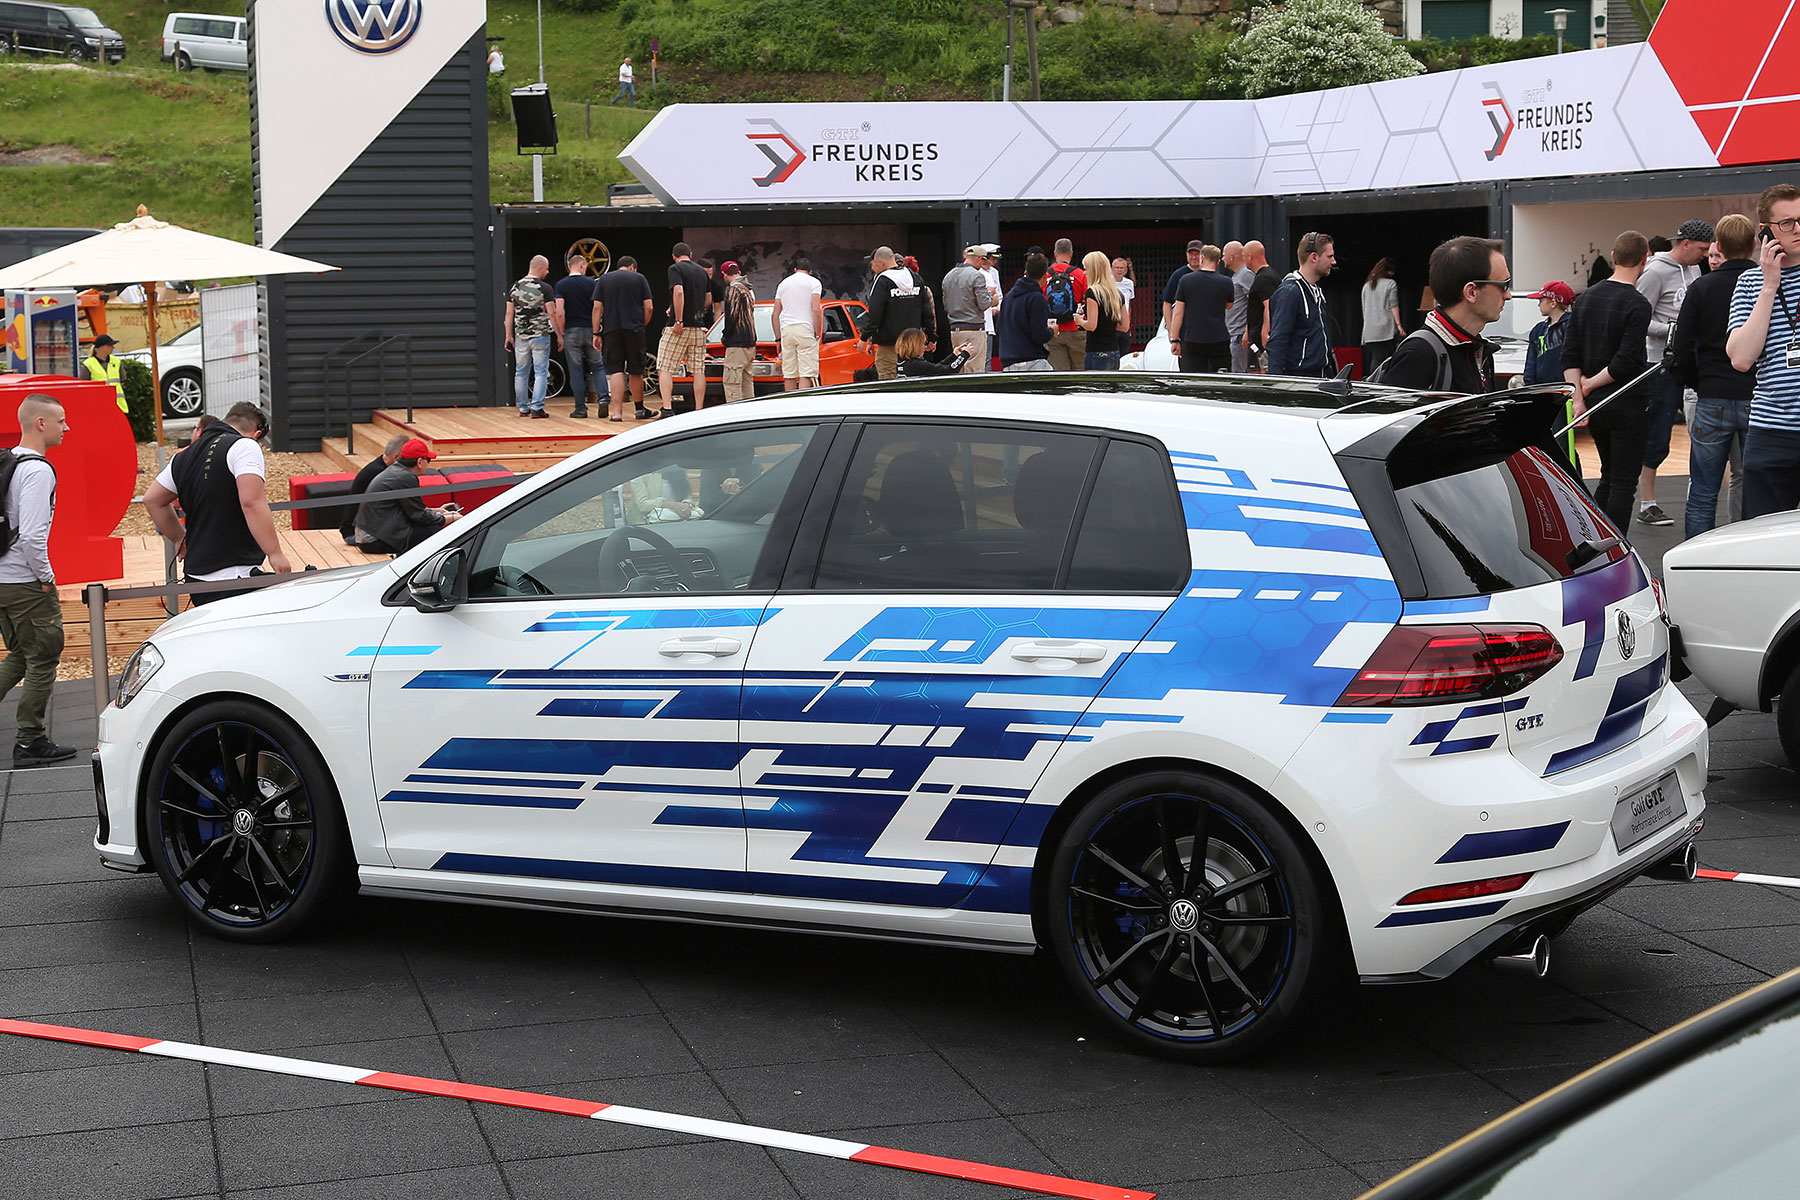 race bred 164mph volkswagen golf gti tcr revealed. Black Bedroom Furniture Sets. Home Design Ideas